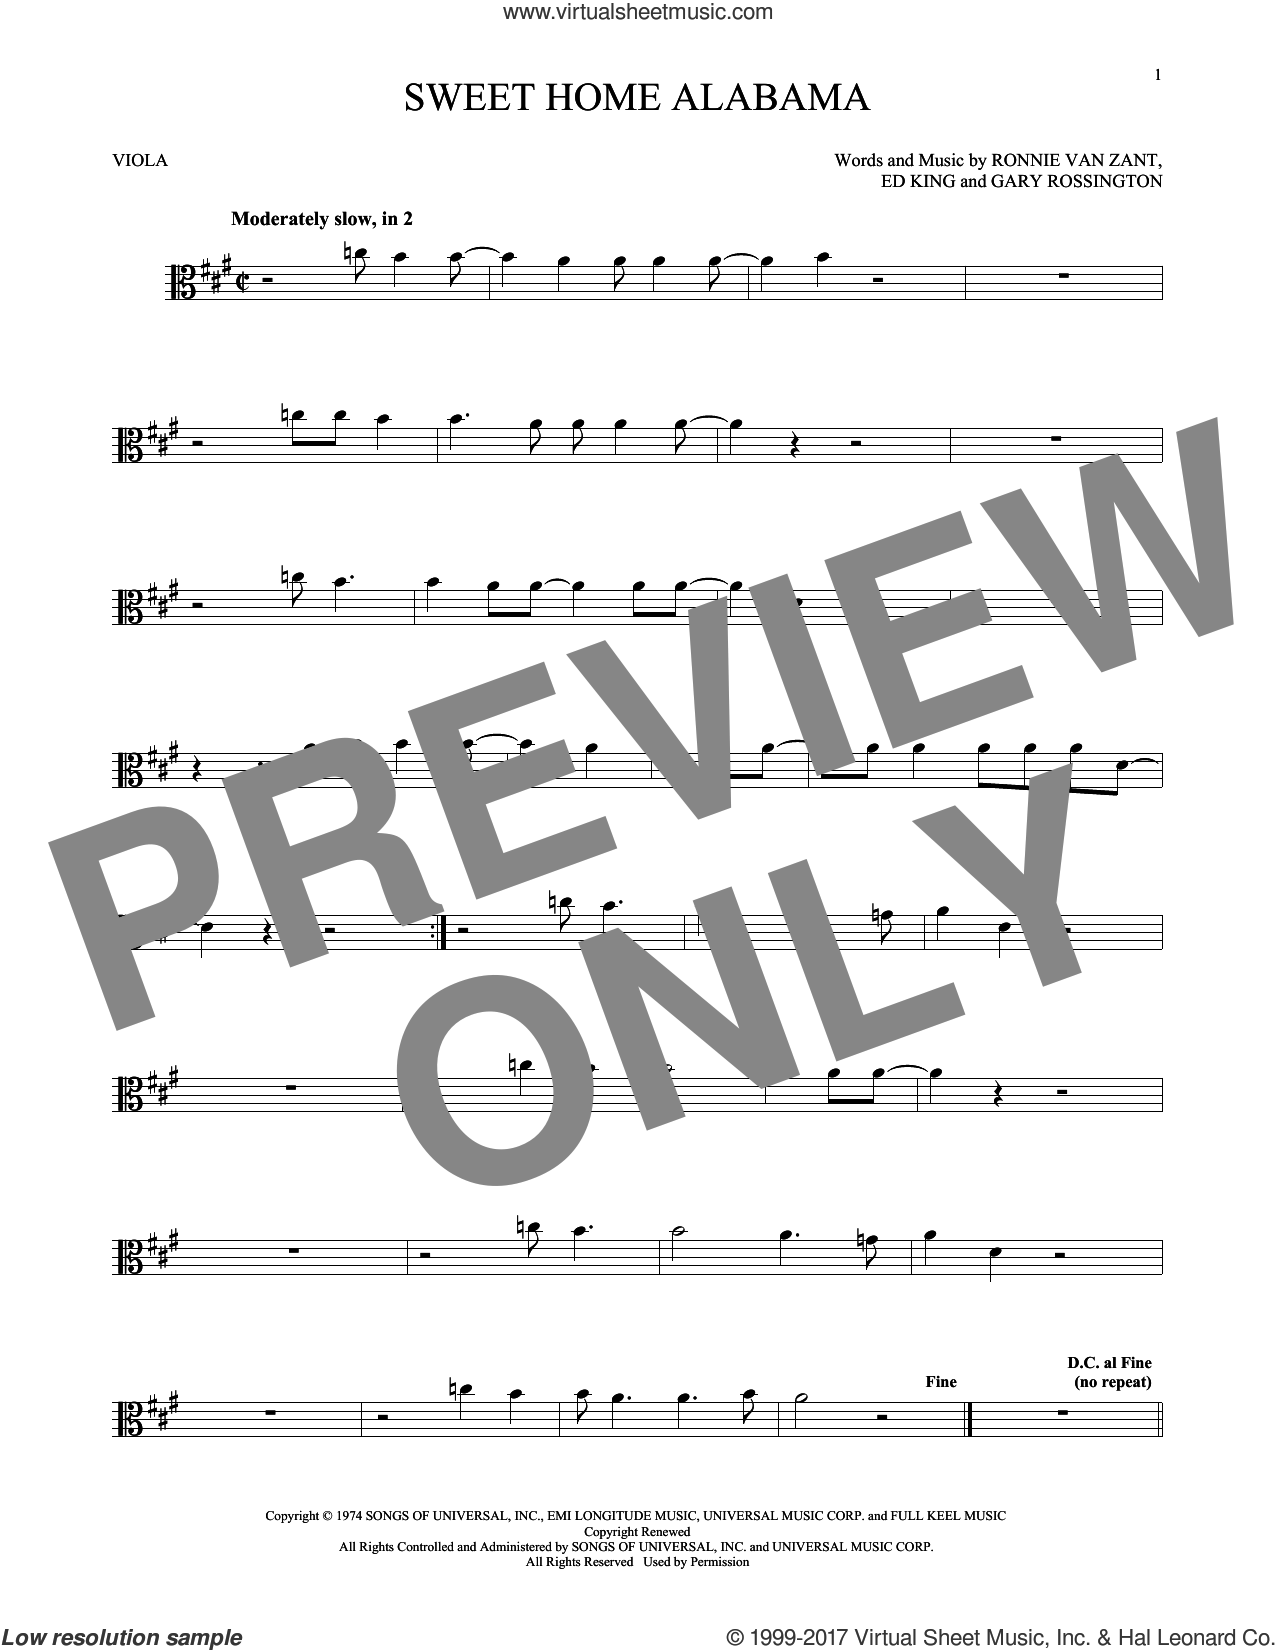 Sweet Home Alabama sheet music for viola solo by Lynyrd Skynyrd, Edward King, Gary Rossington and Ronnie Van Zant, intermediate skill level